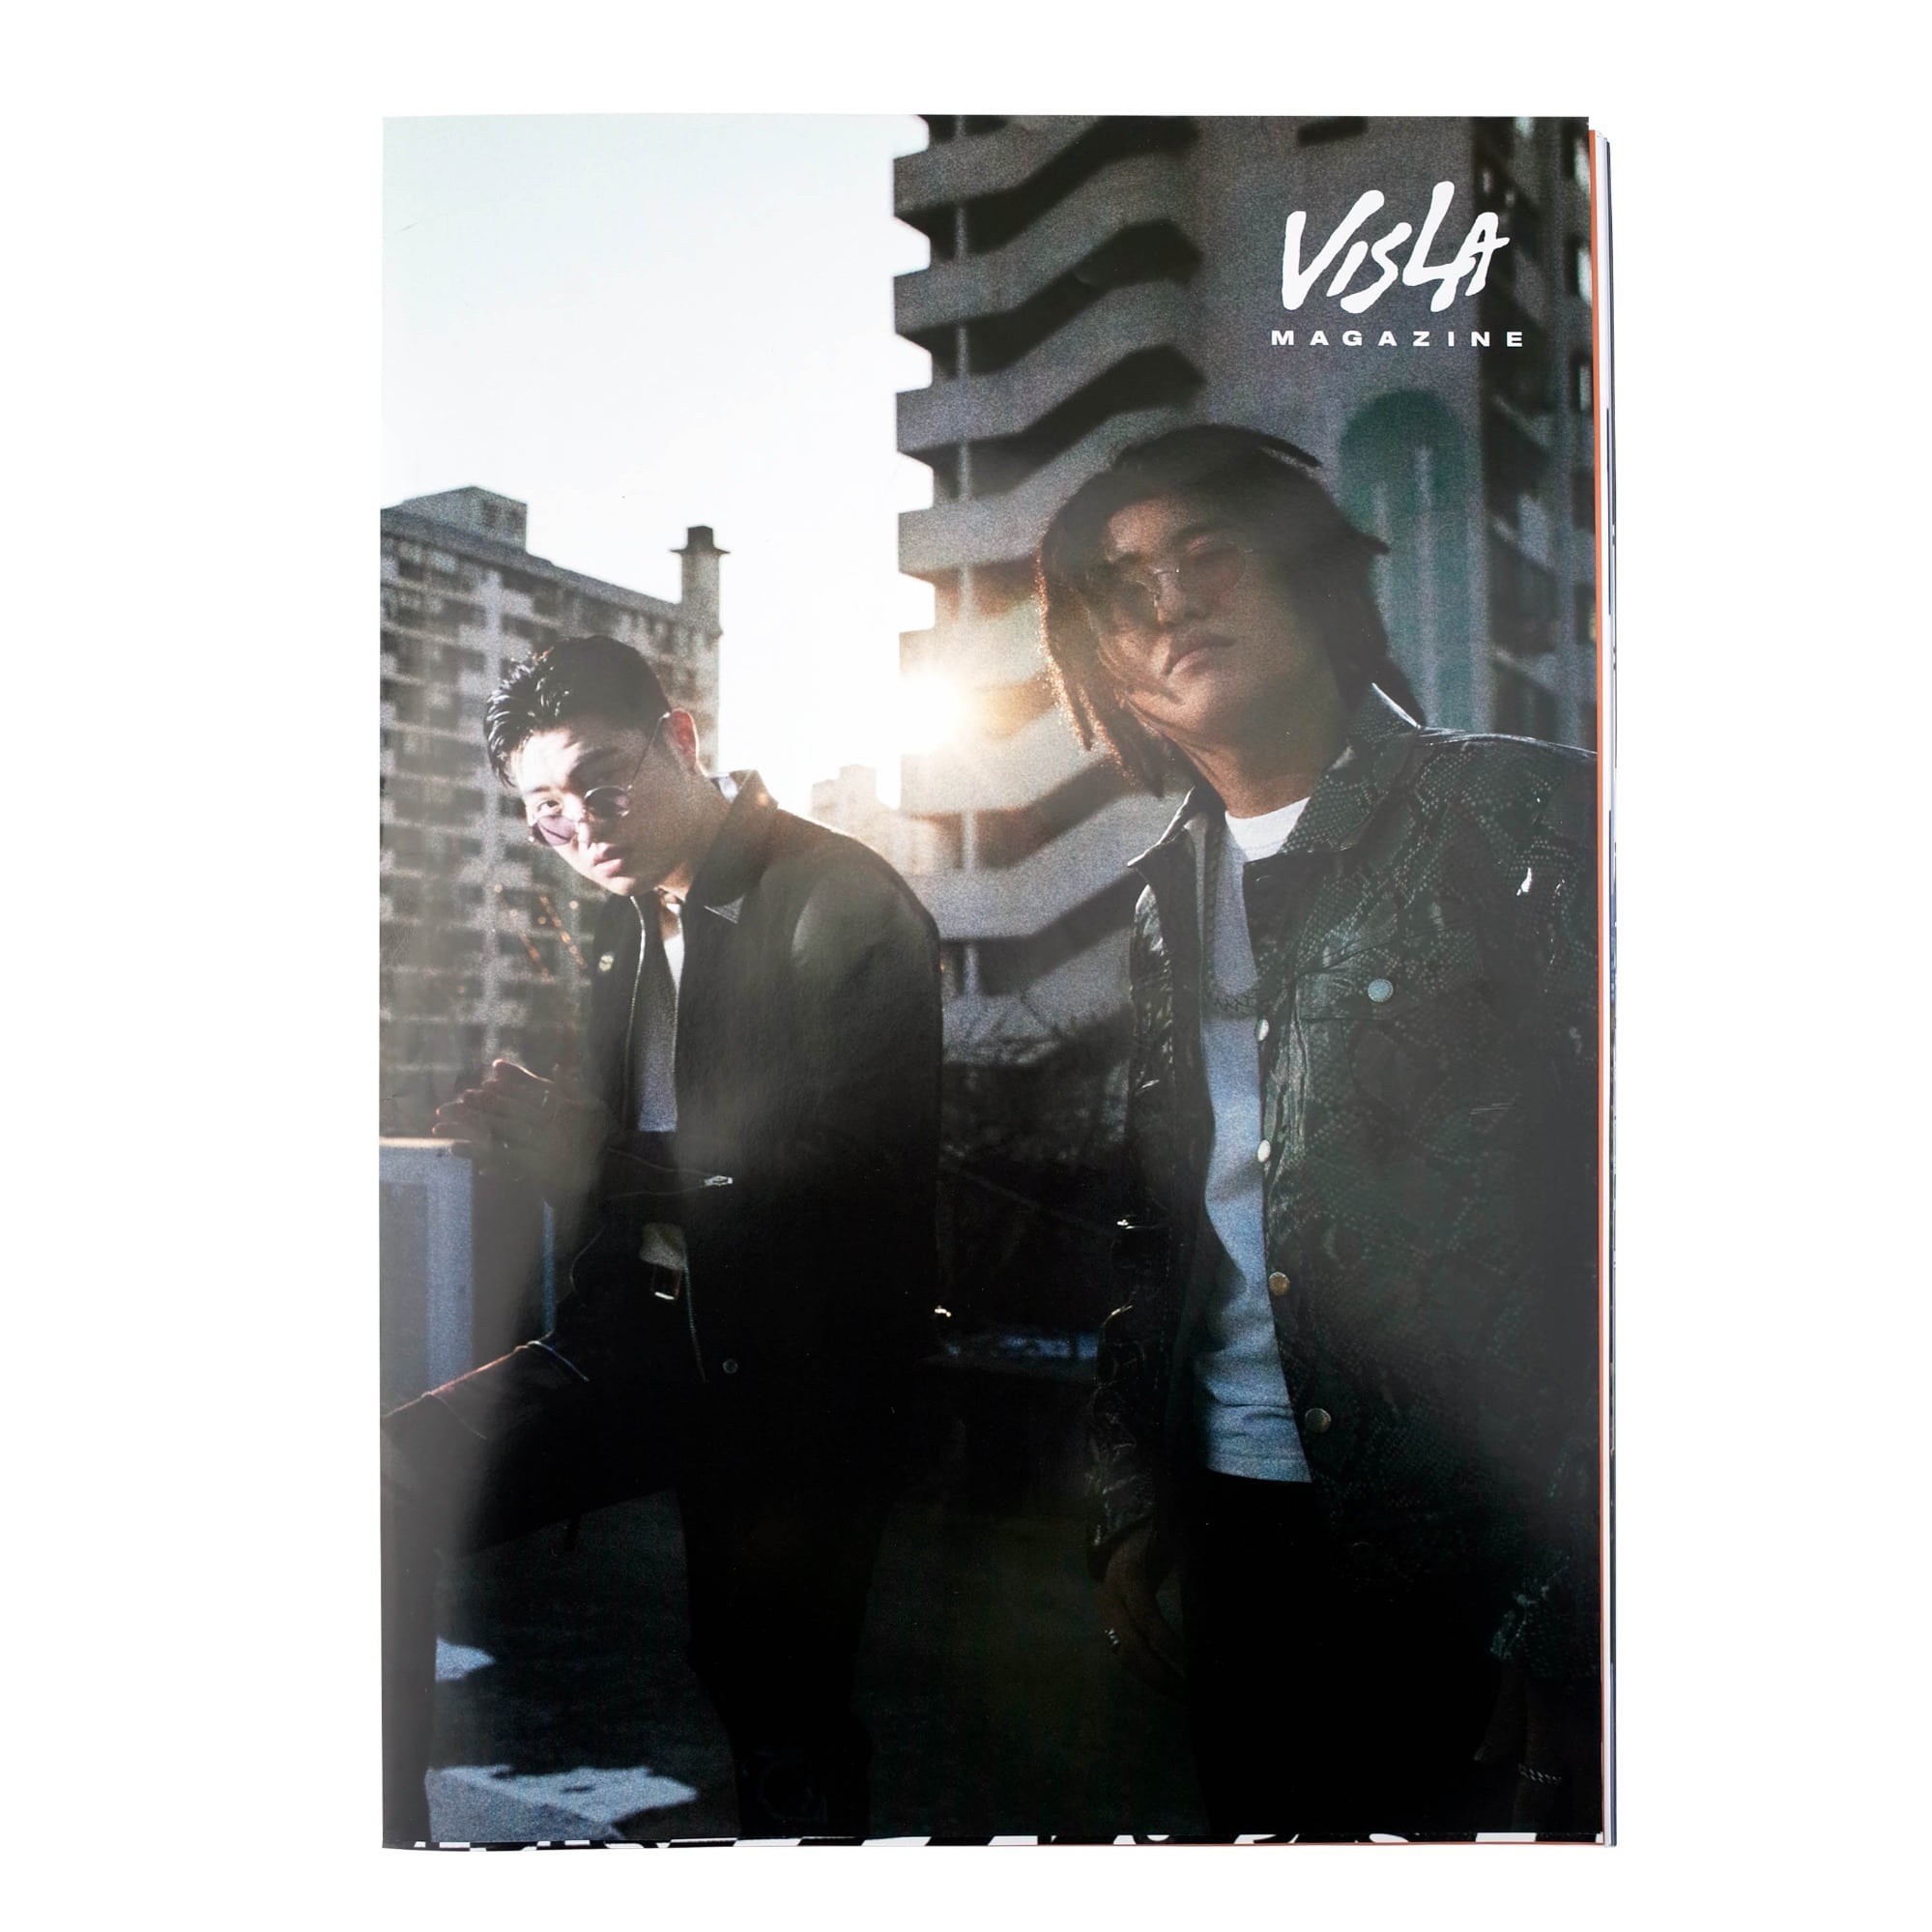 VISLA MAGAZINE ISSUE 15 2021/MARCH